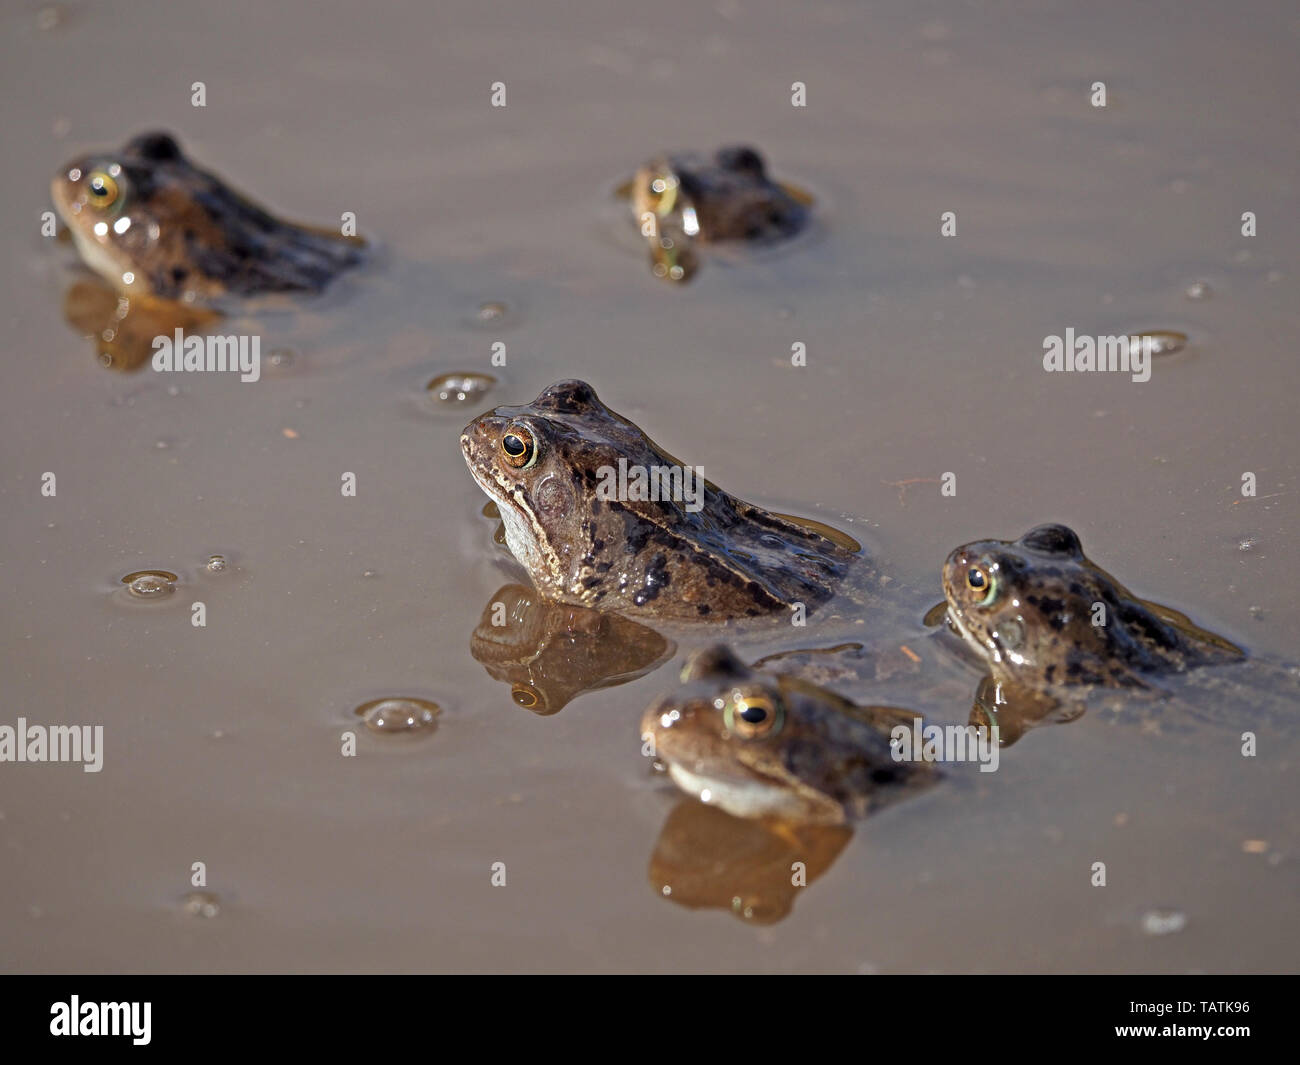 gathering of five European common frogs (Rana temporaria) with reflections in muddy upland breeding pool in Cumbria, England, UK - Stock Image